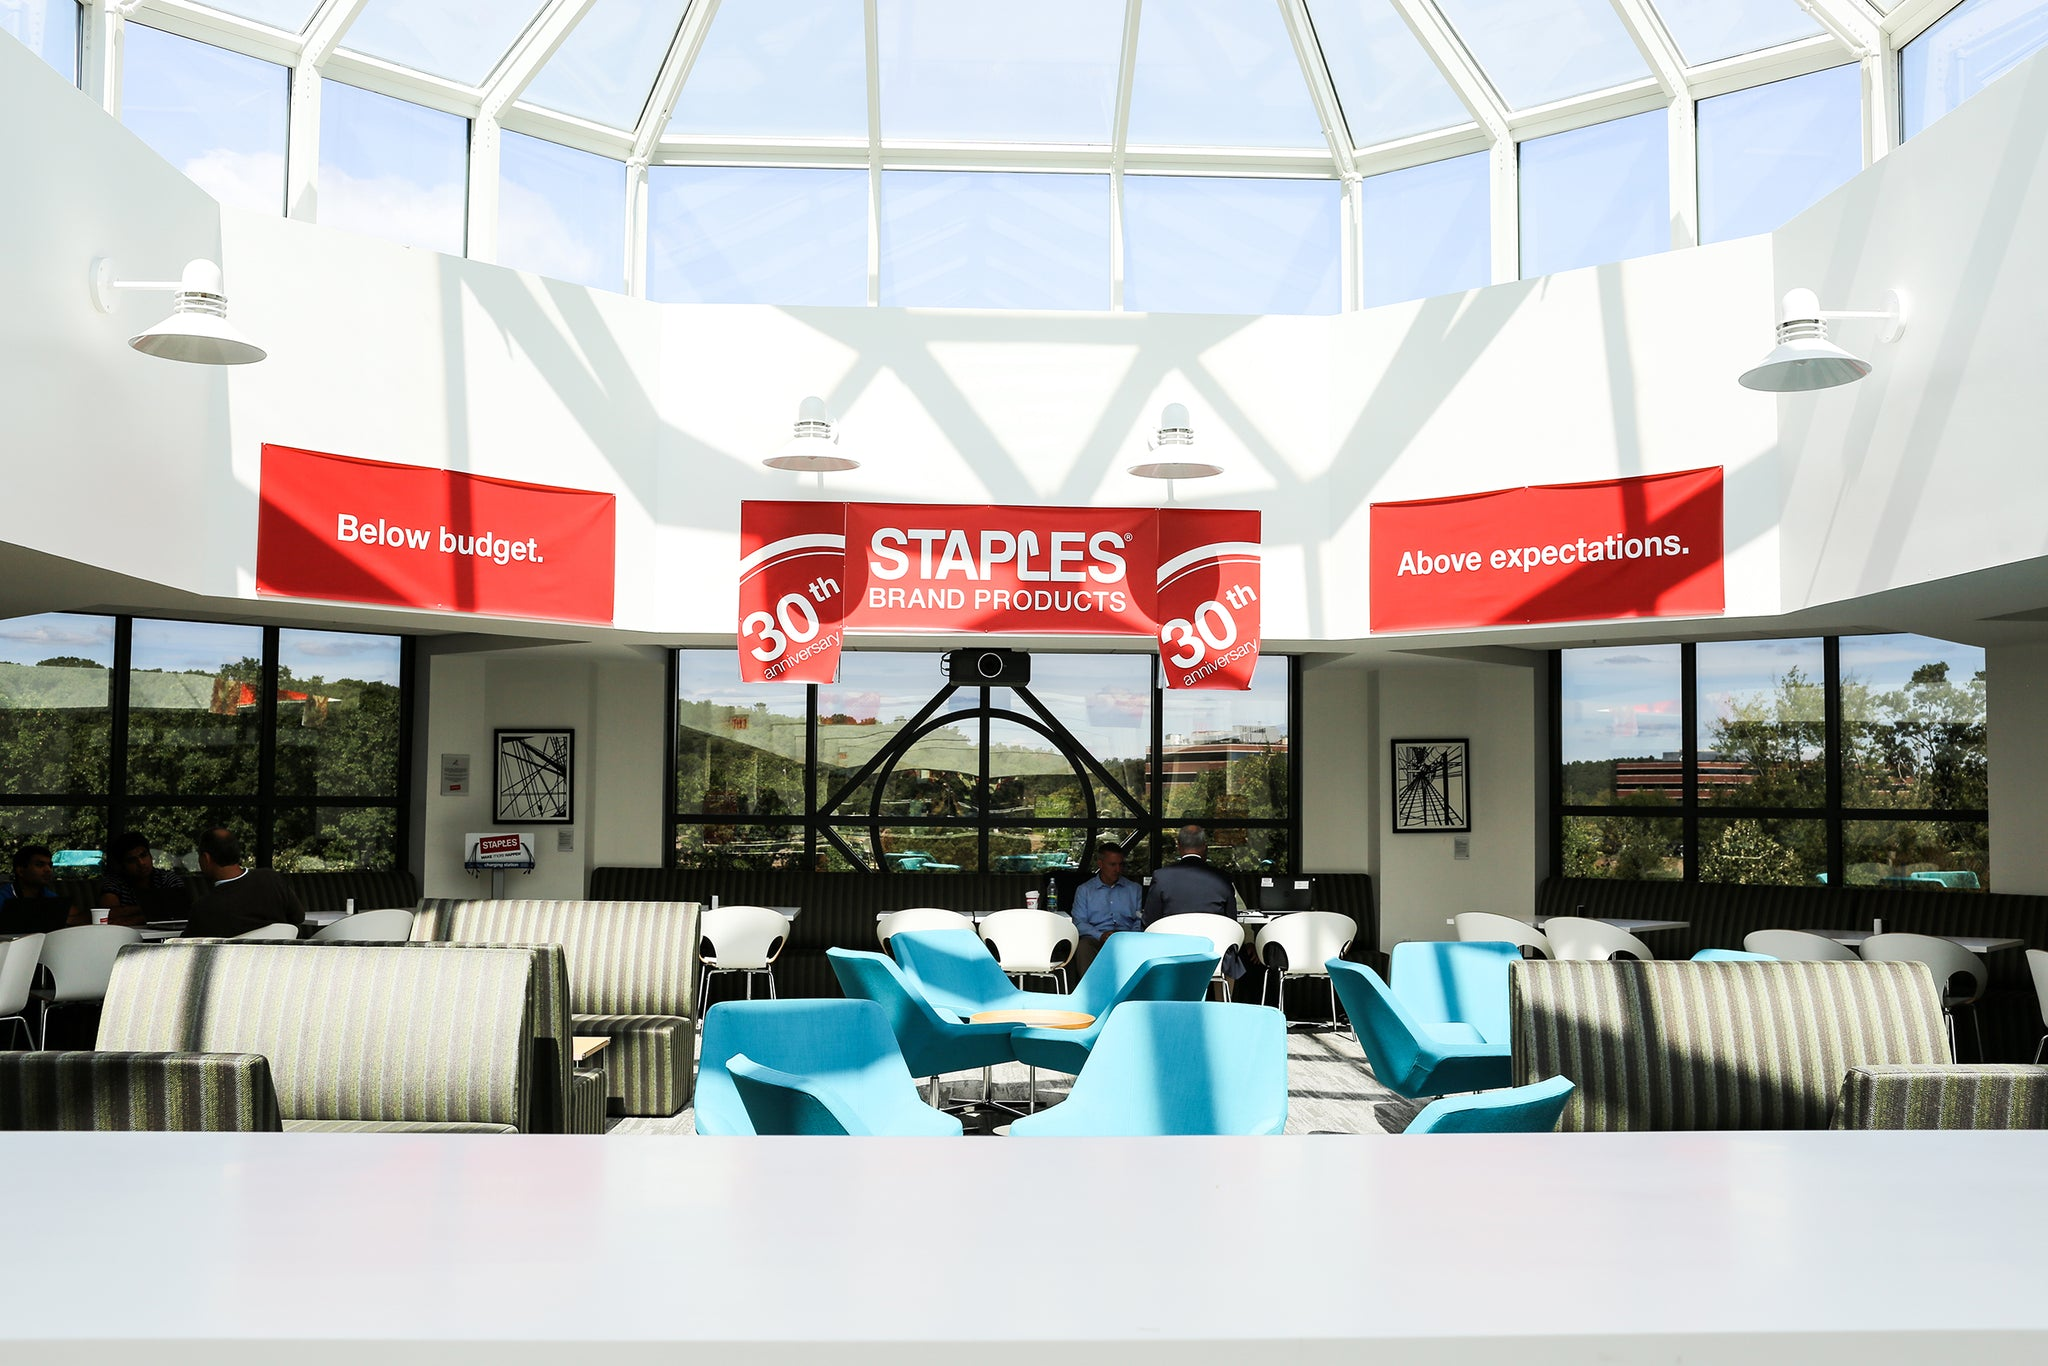 In 2014, Staples bought ArtLifting artworks for their Headquarters in Framingham, MA.